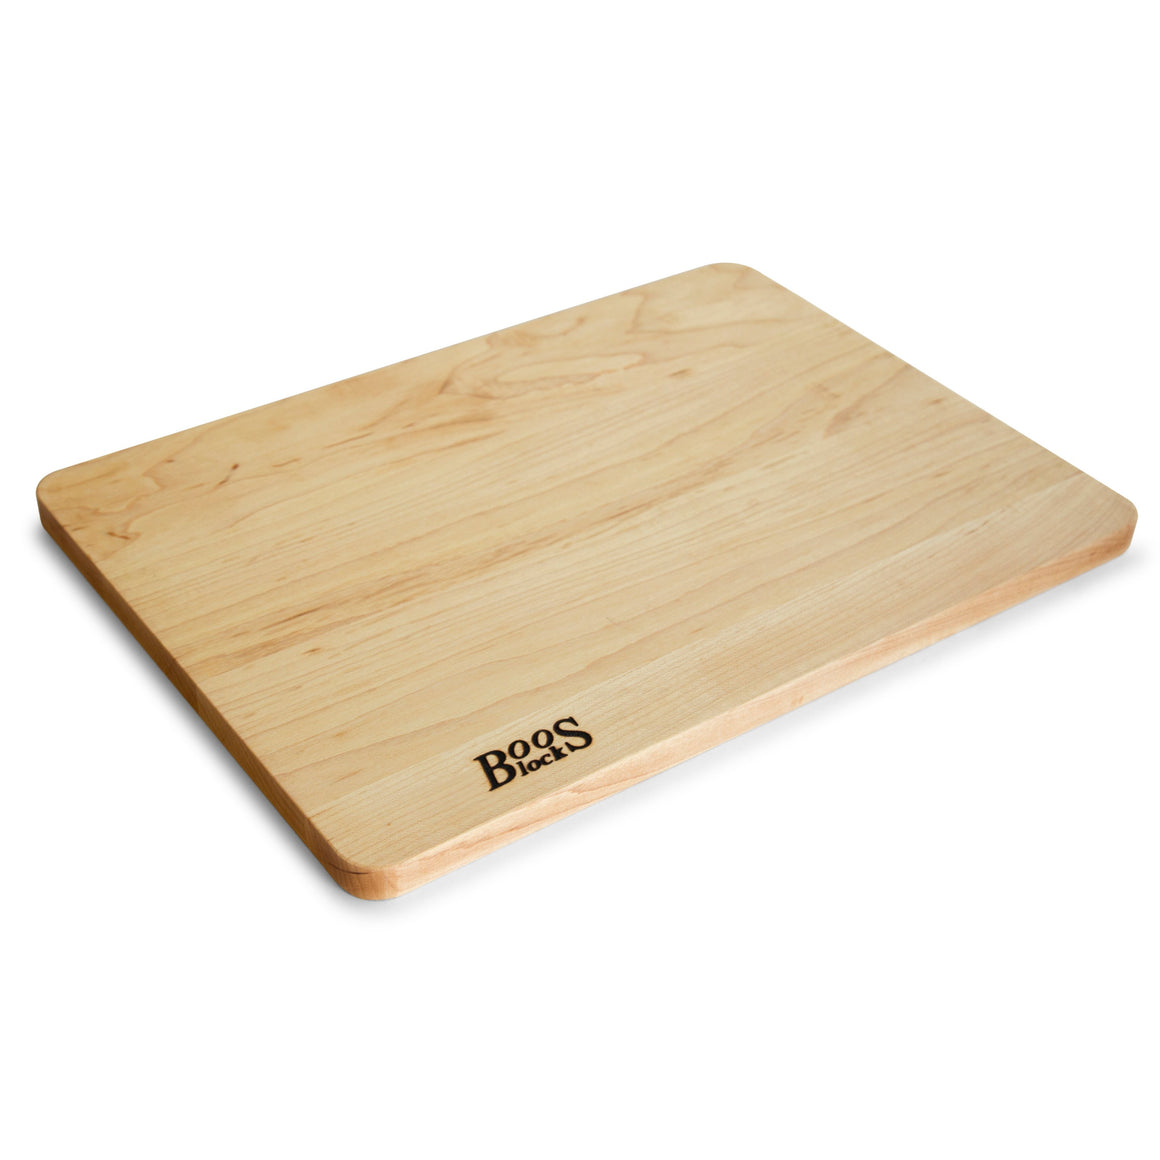 "Maple Edge Grain Cutting Board 3/4"" Thick- No Grips"